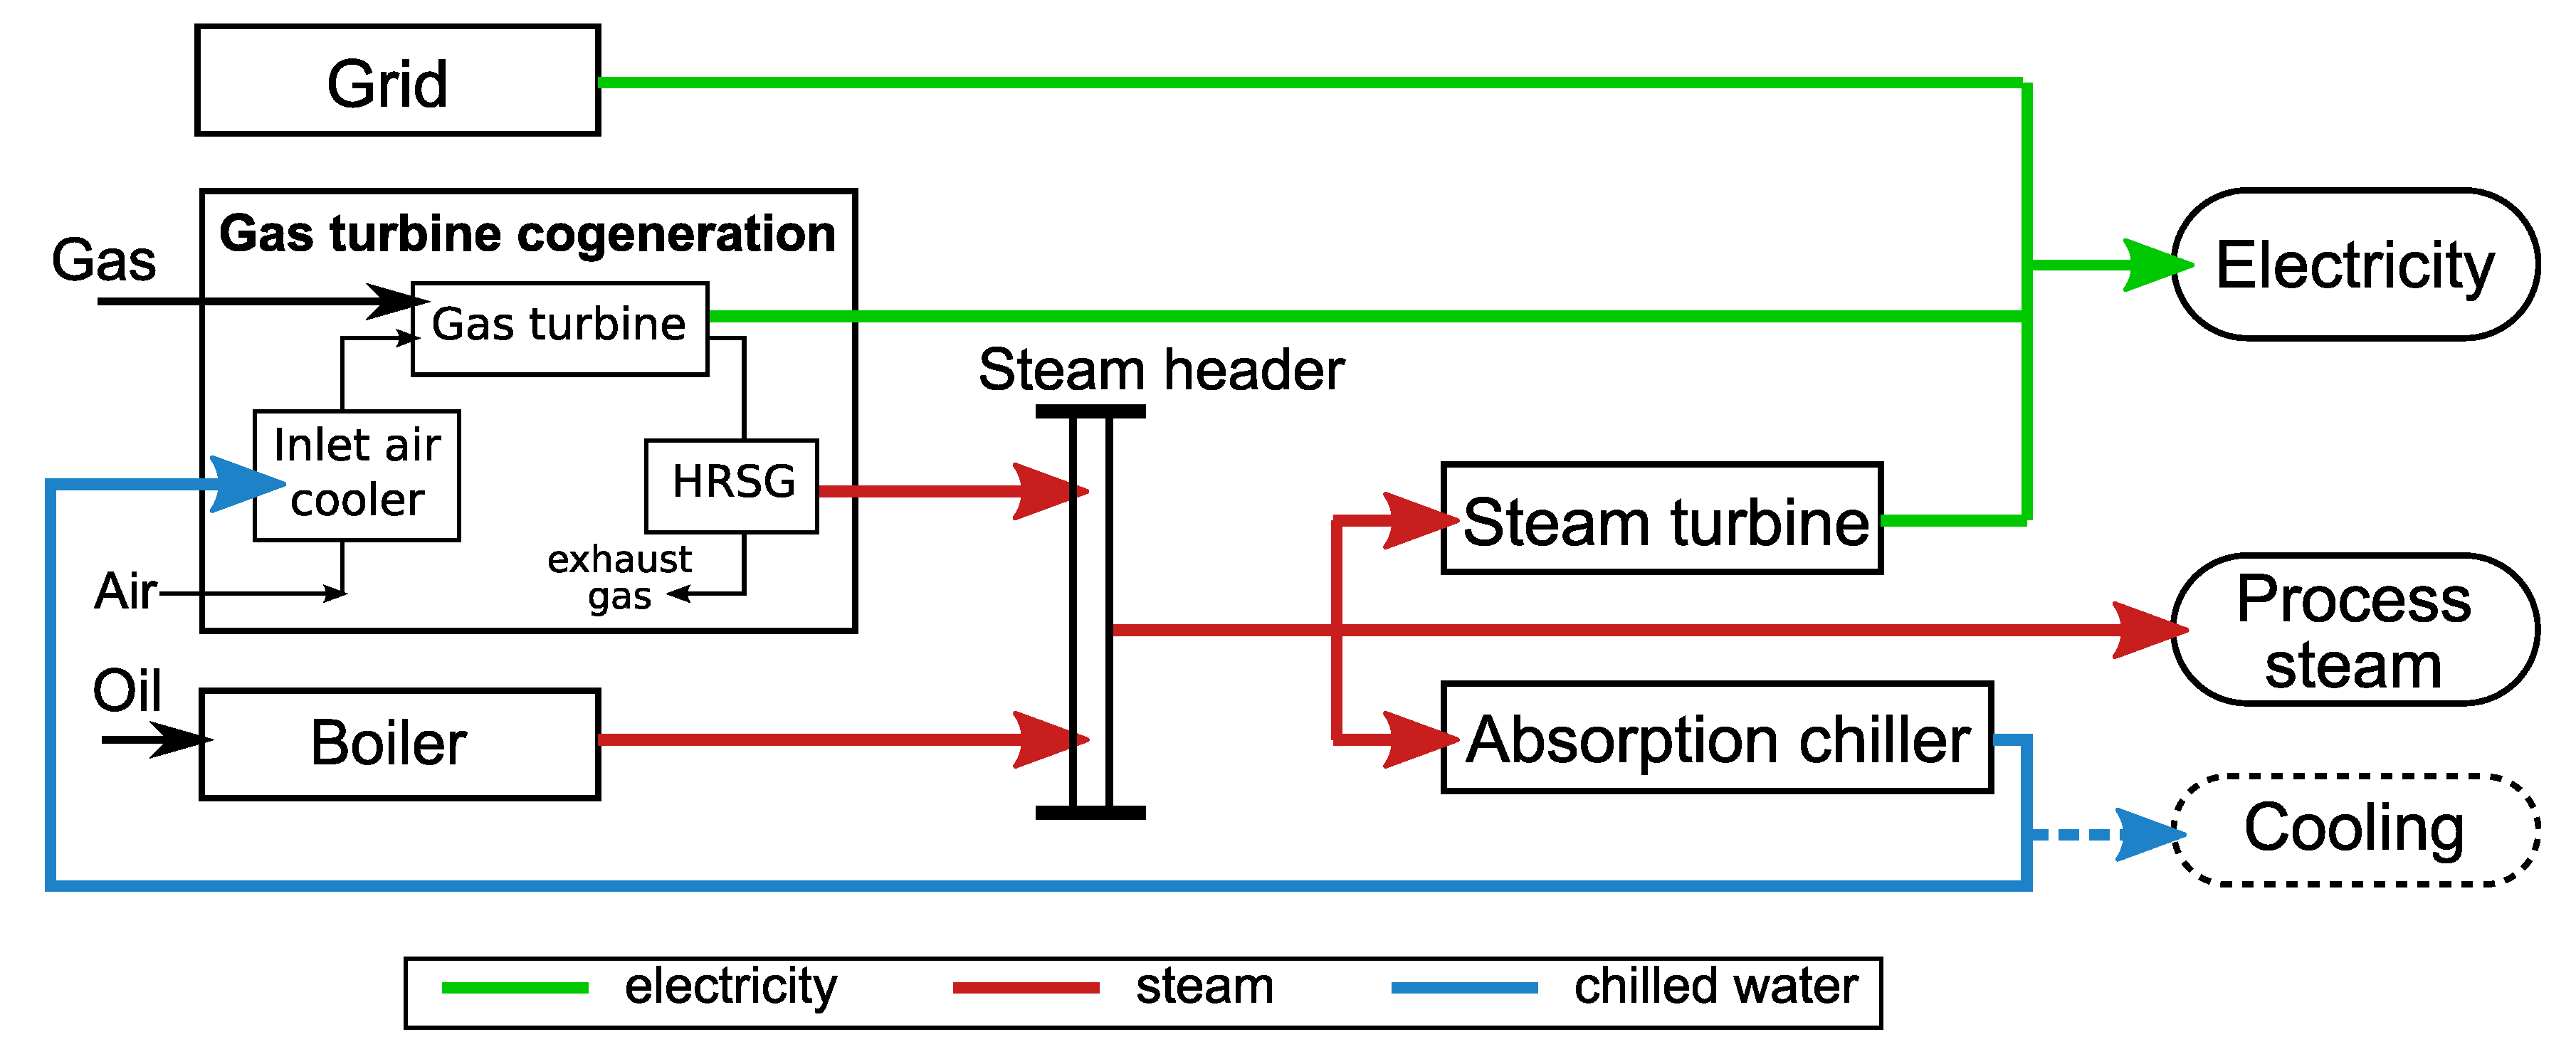 Cogeneration Power Plant Diagram Gas Energies Free Full Text The Optimal Operation Criteria For A 3619x1495